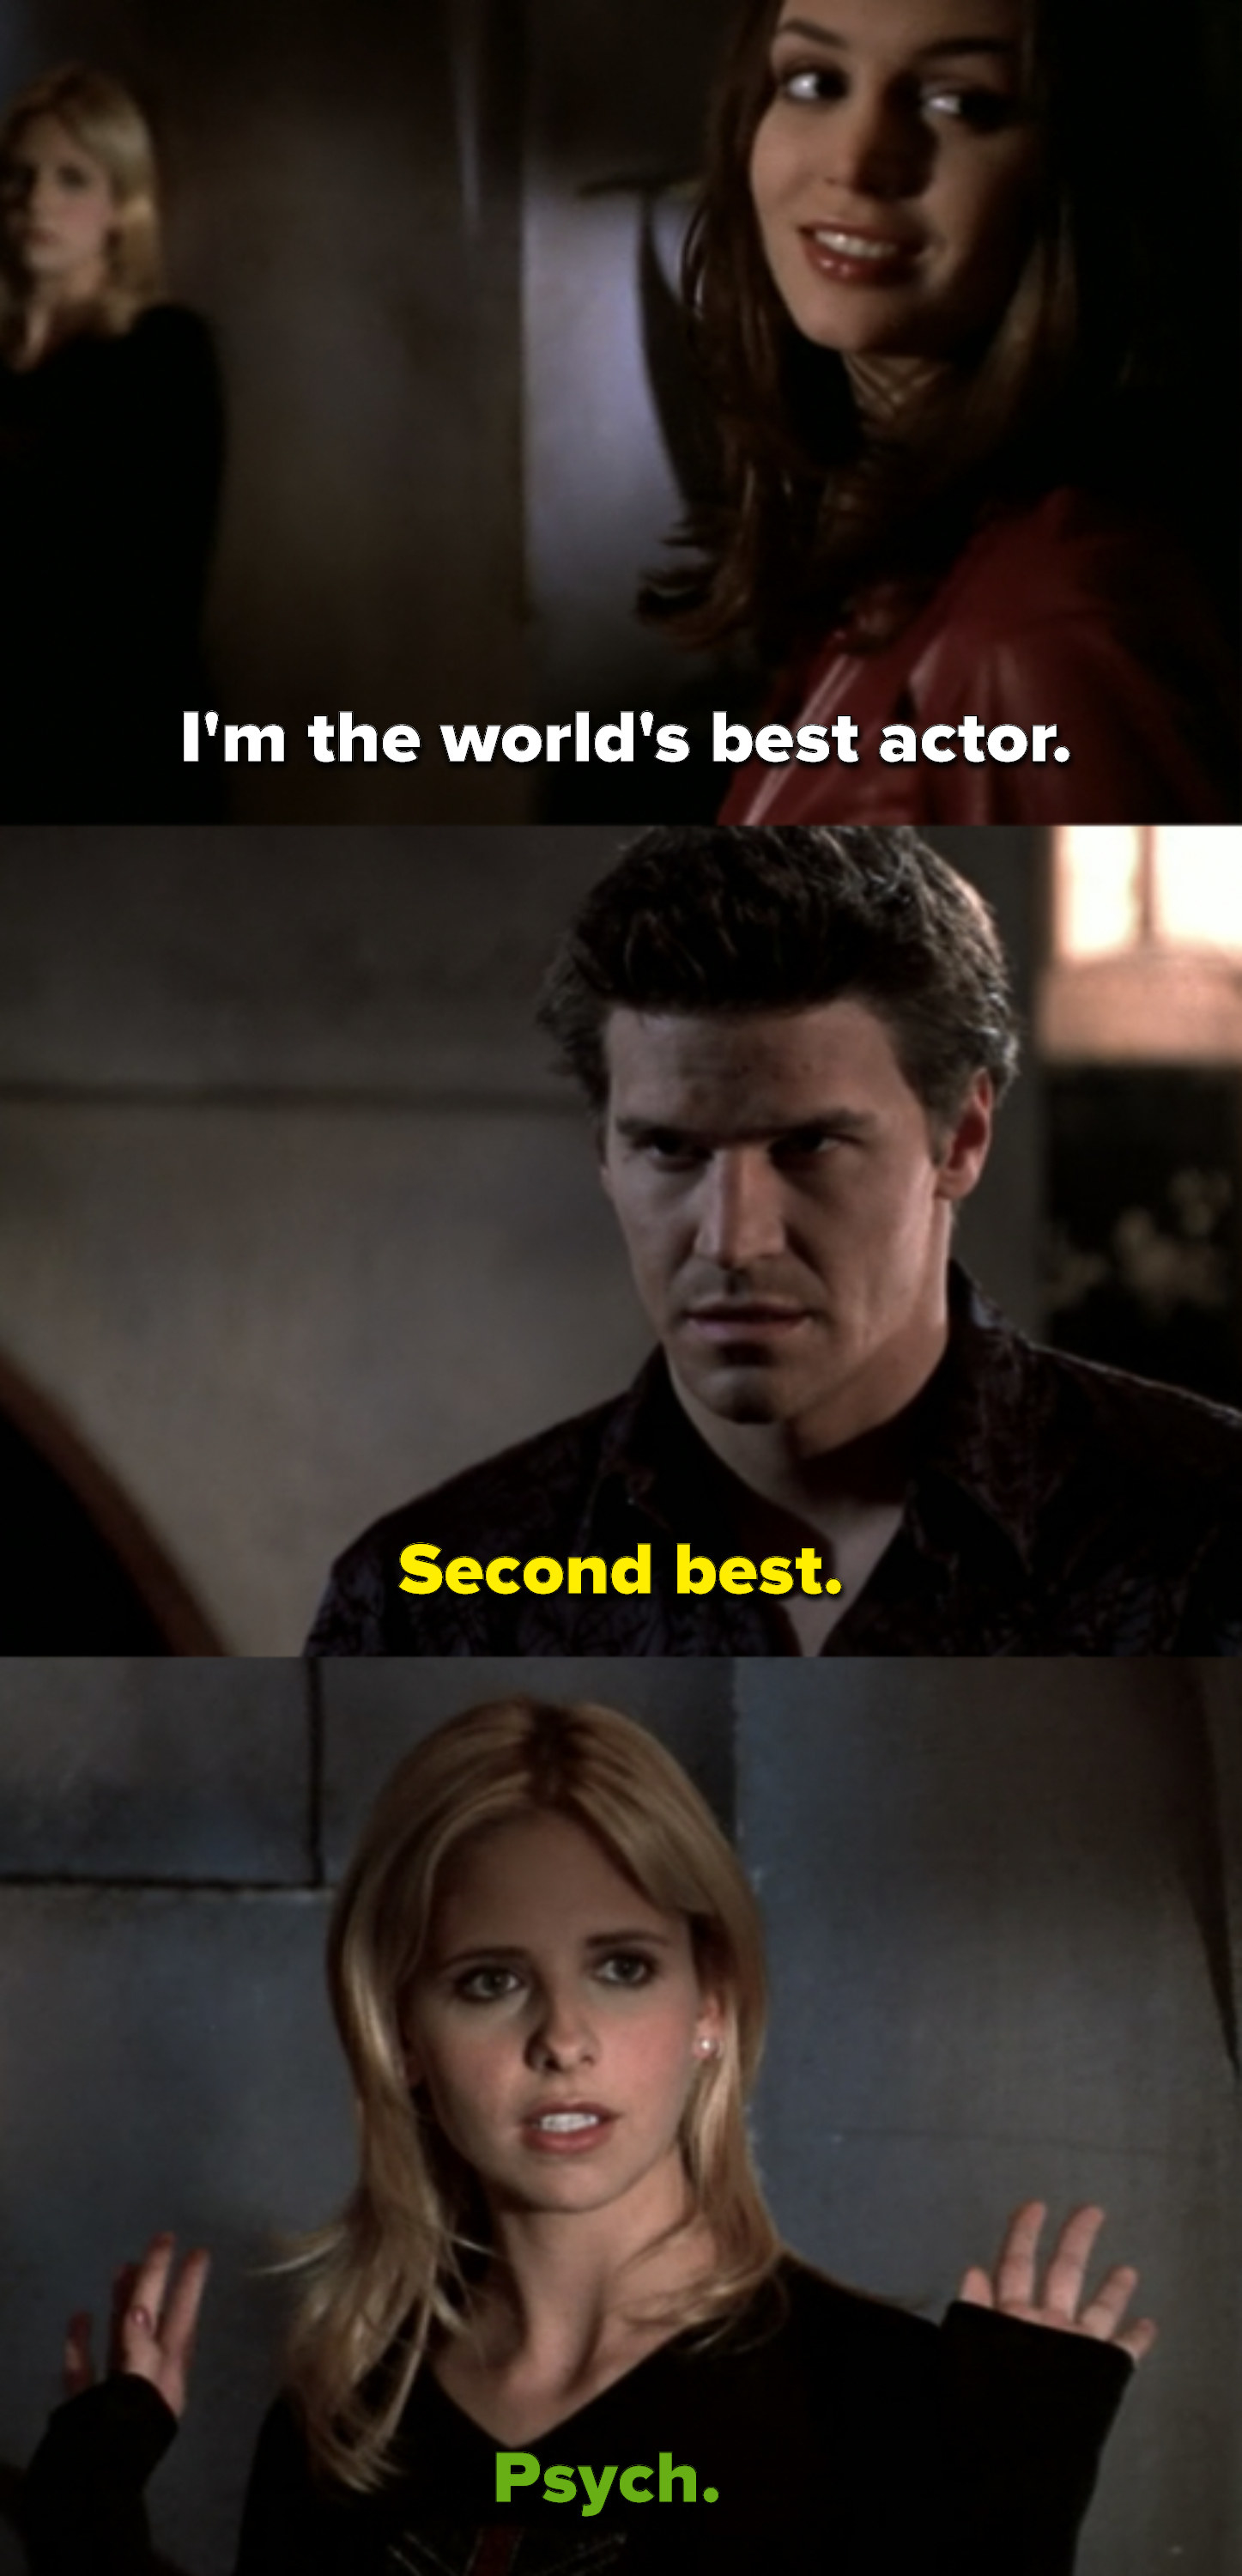 """Faith says she's the world's best actor, and Angel corrects her by saying she's second best. Buffy pulls her hands free from the cuffs and says """"Psych"""""""